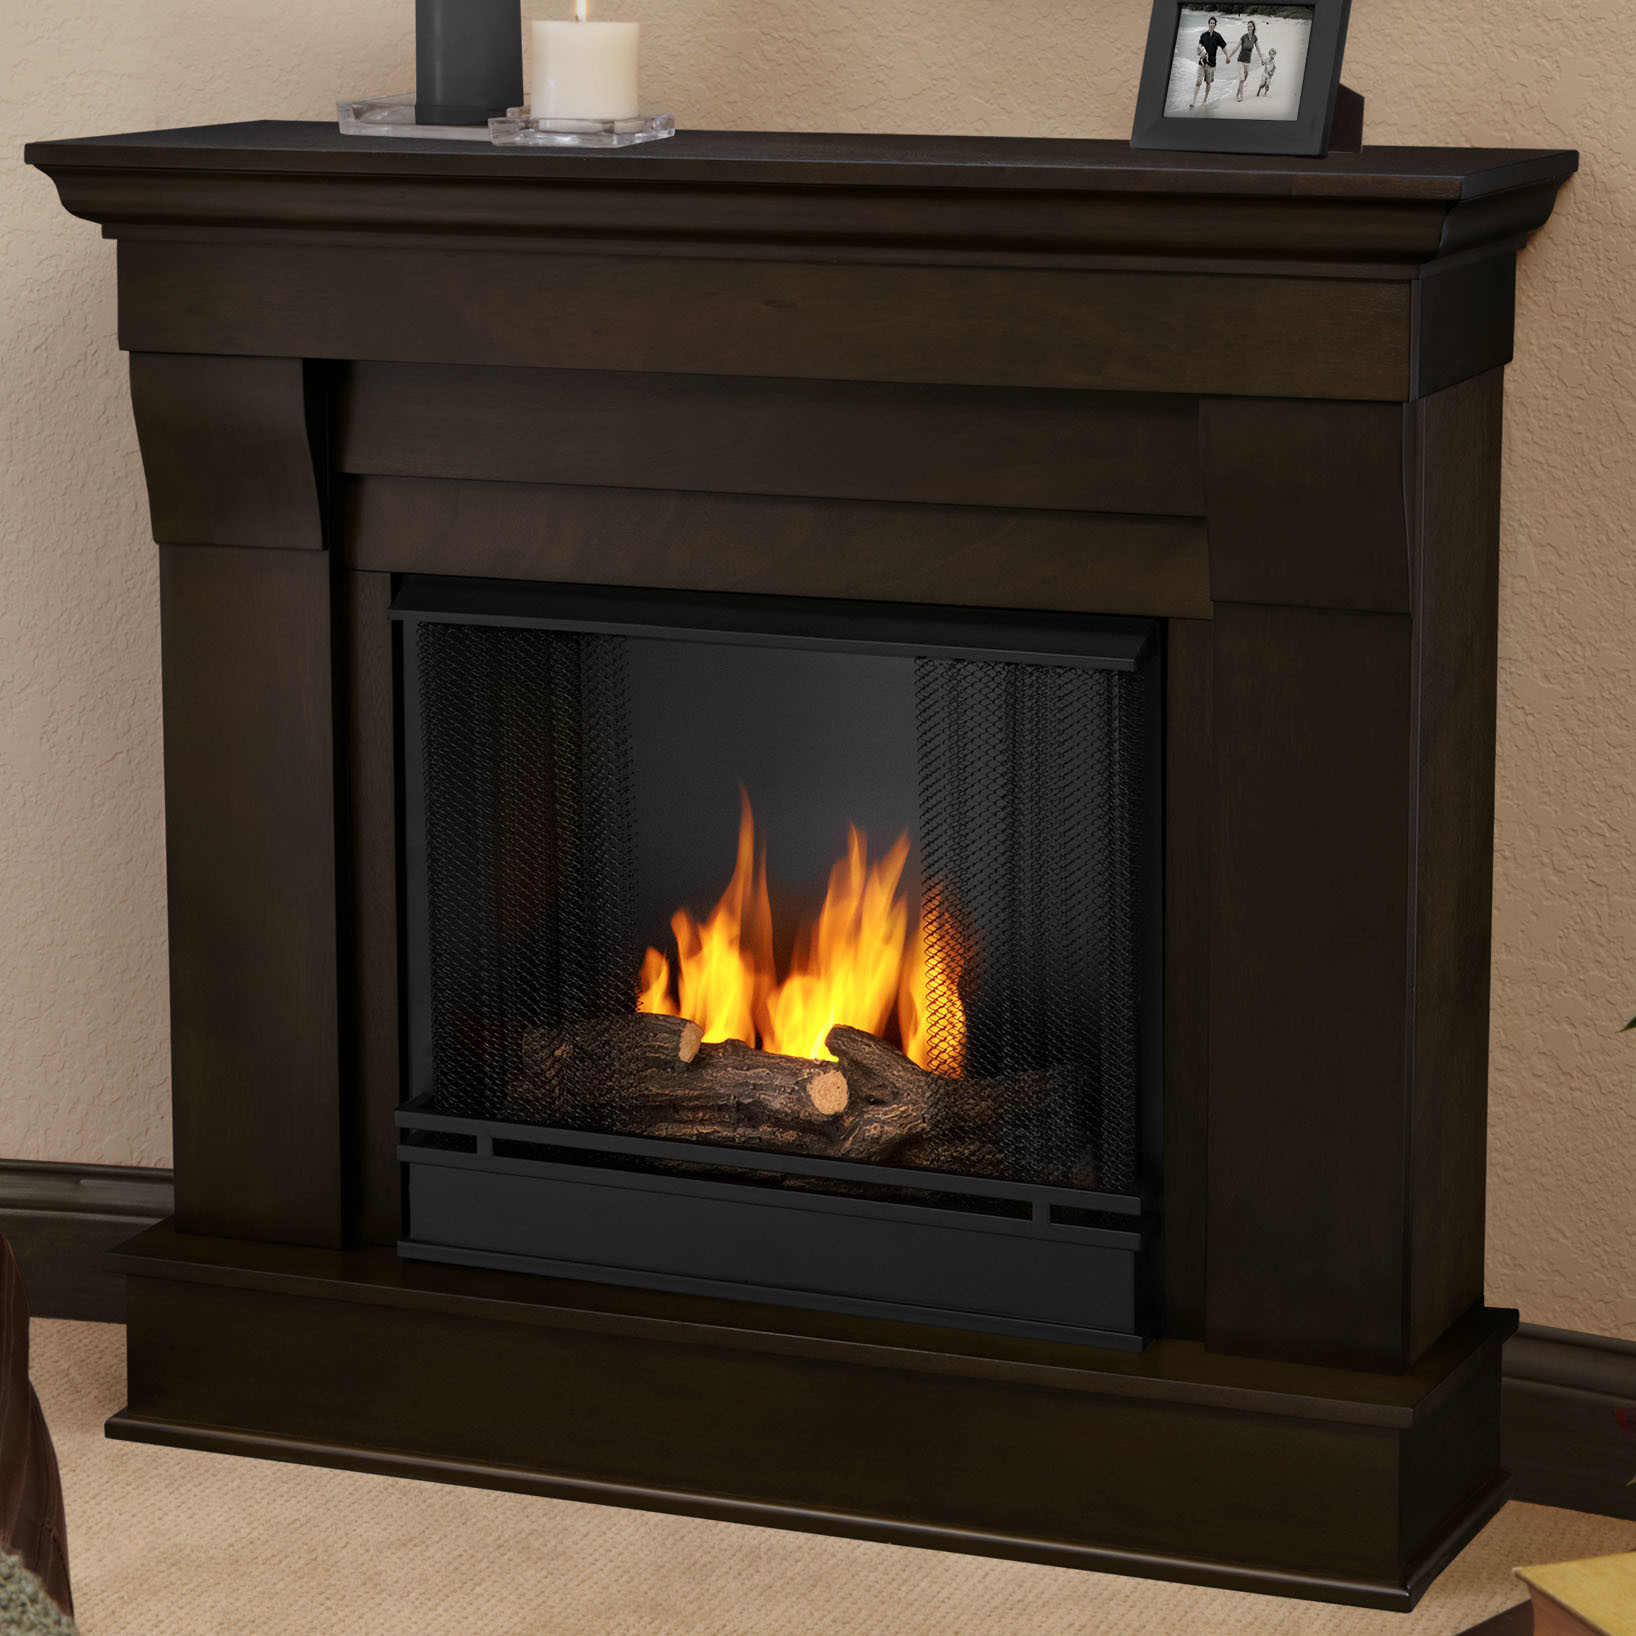 Best ideas about Real Flame Fireplace . Save or Pin Real Flame Chateau Gel Fuel Fireplace & Reviews Now.